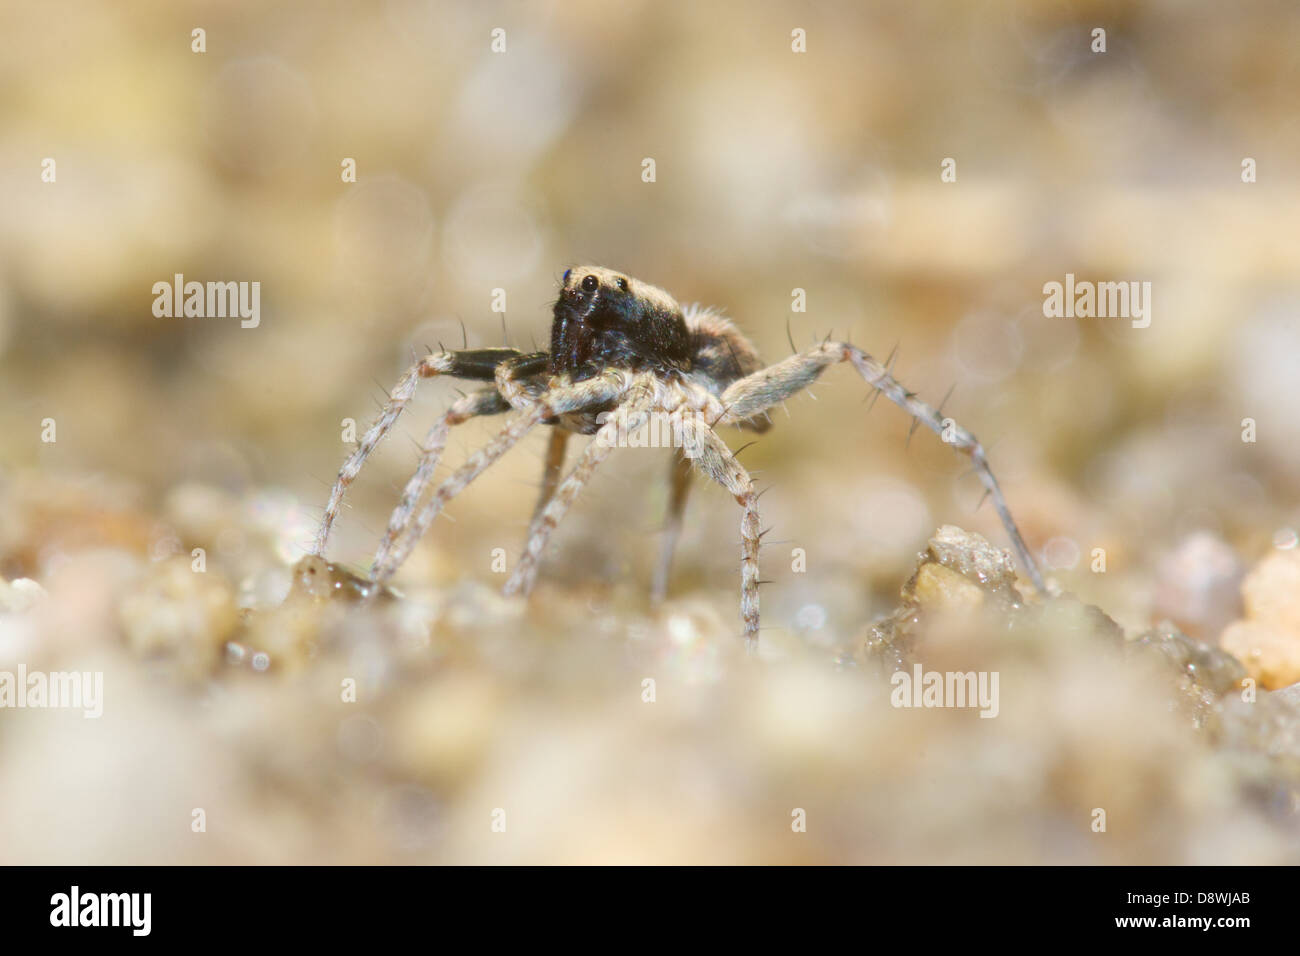 Wolf Spider, Pardosa sp. This tiny spider is just 5 mm long and seen hunting on a forest stream river bank. Thailand. - Stock Image